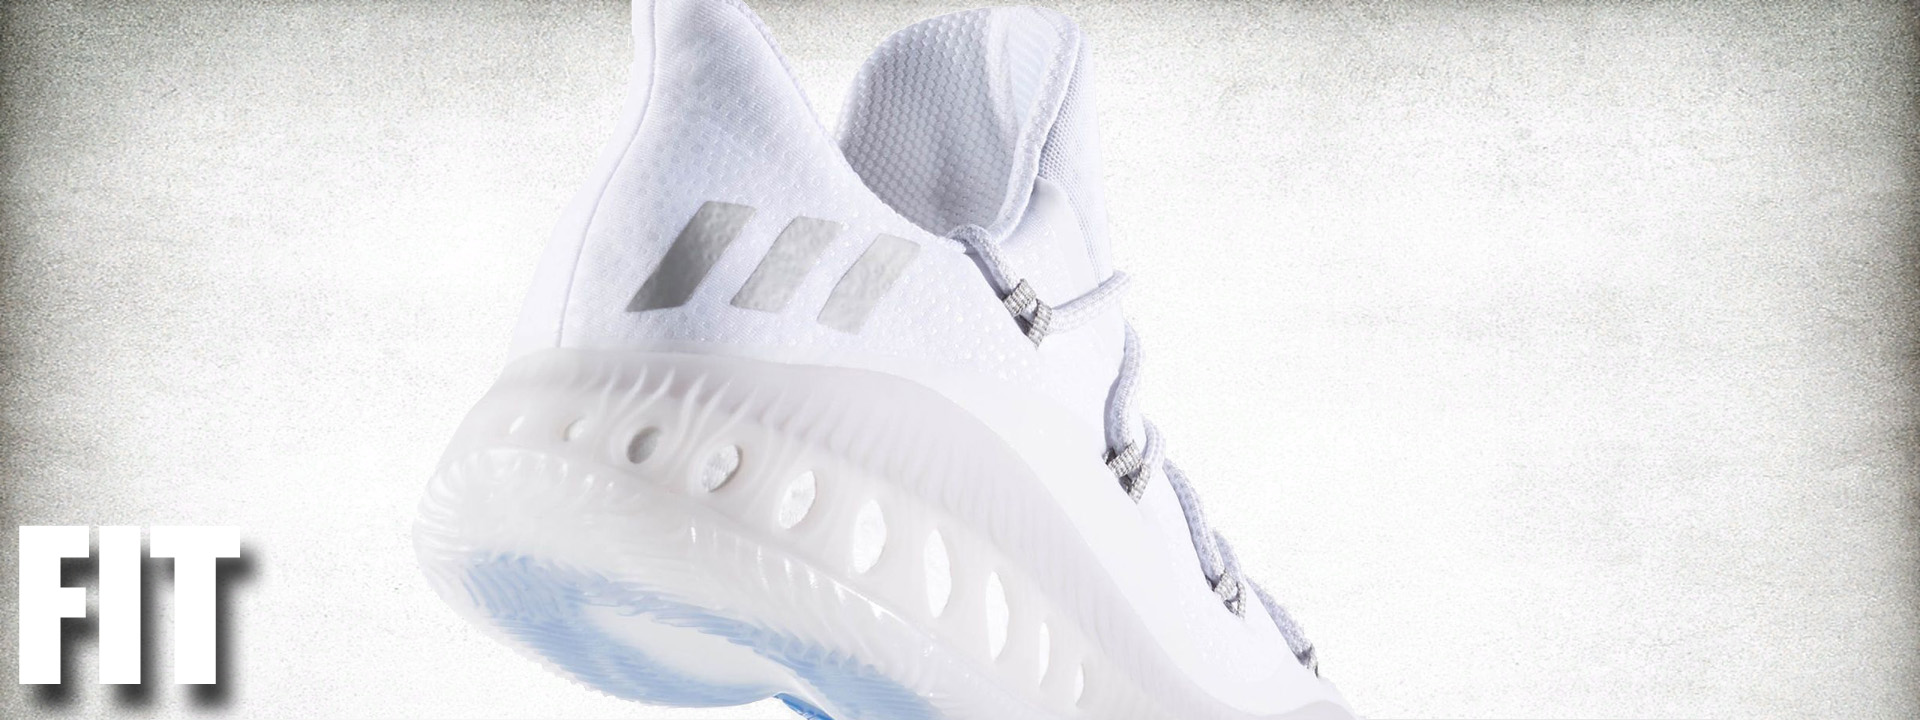 adidas Crazy Explosive Low Performance Review Fit